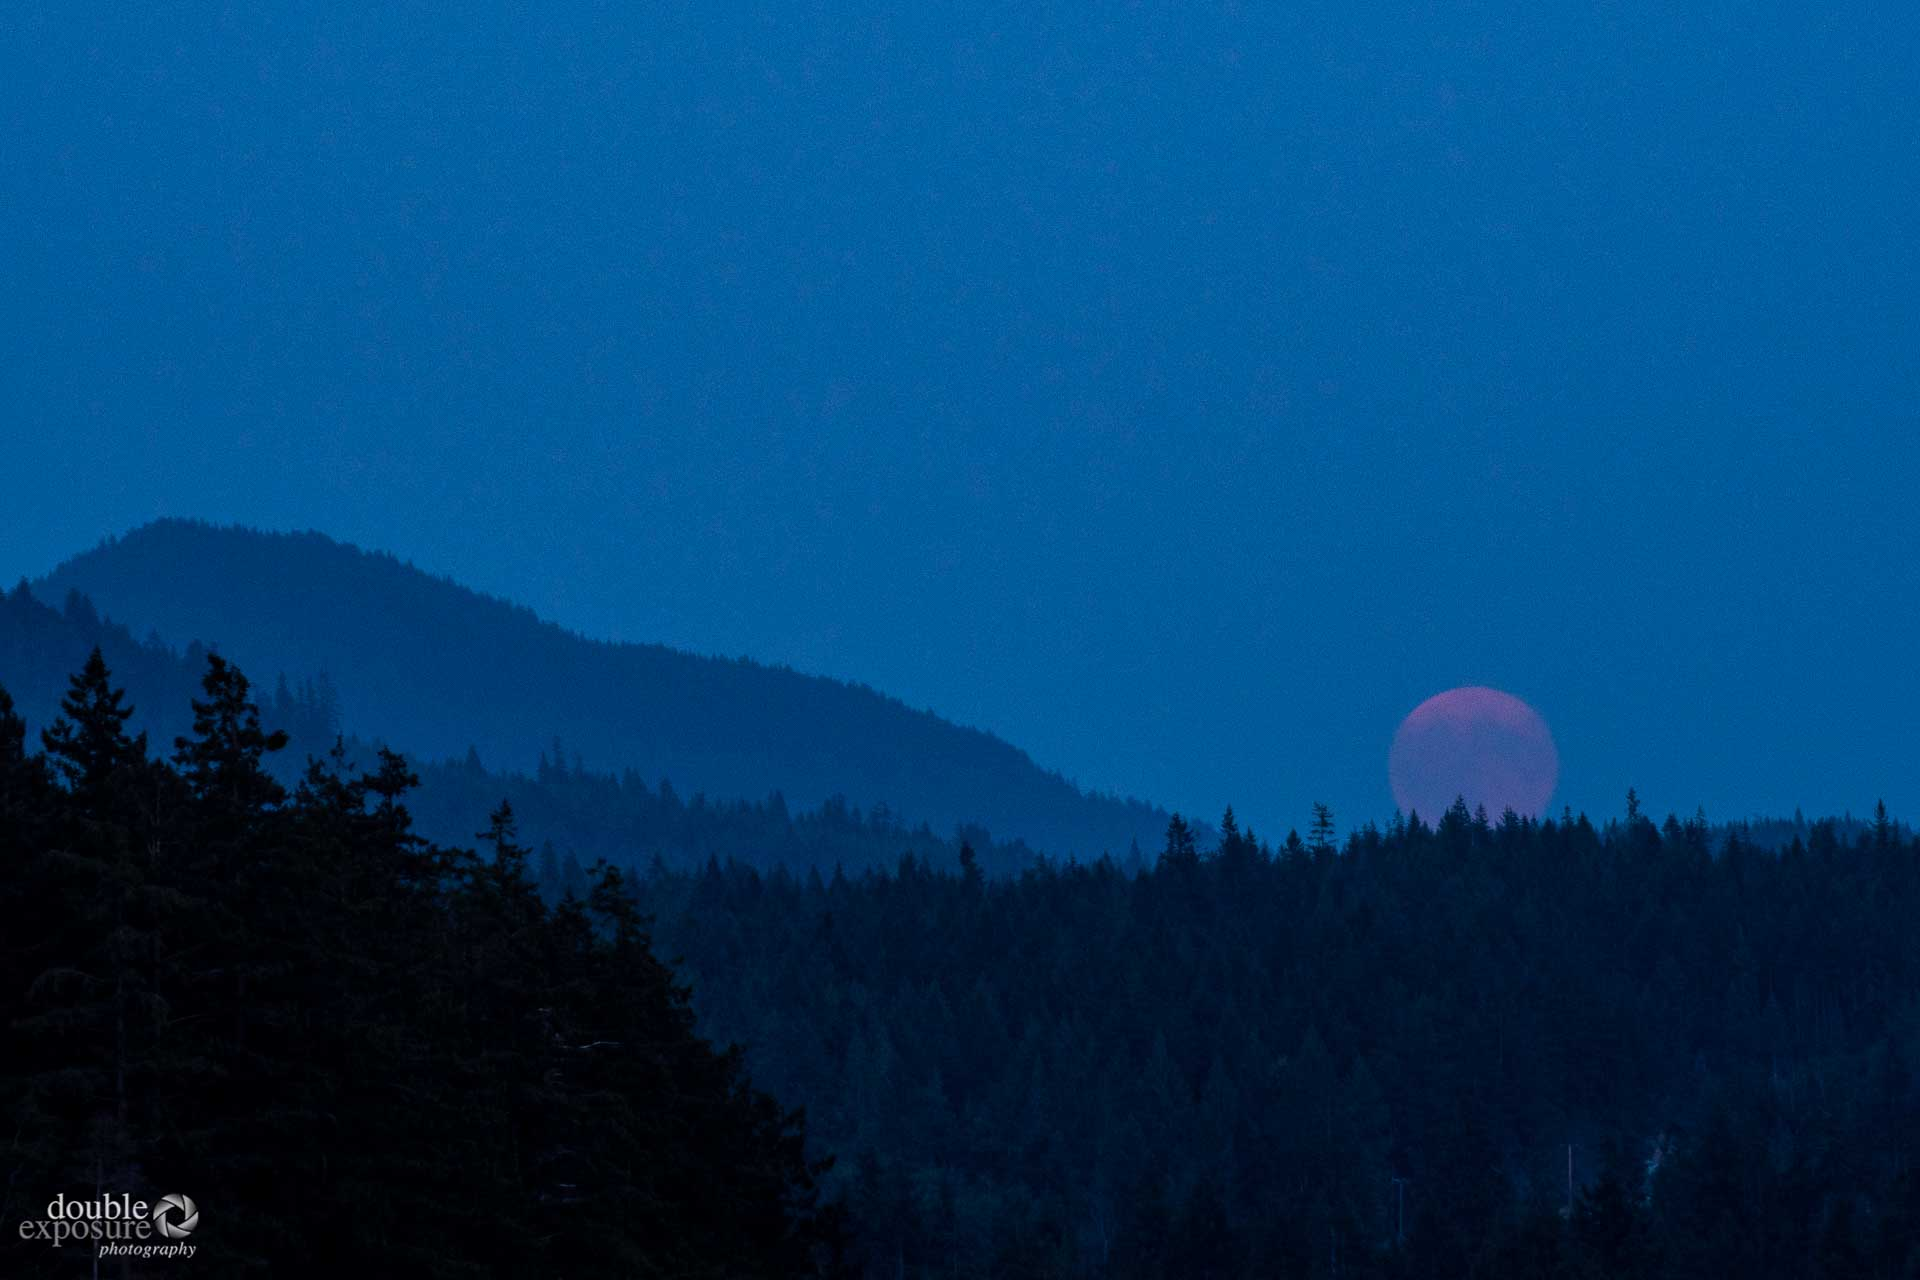 A full moon rises in a smoky sky.